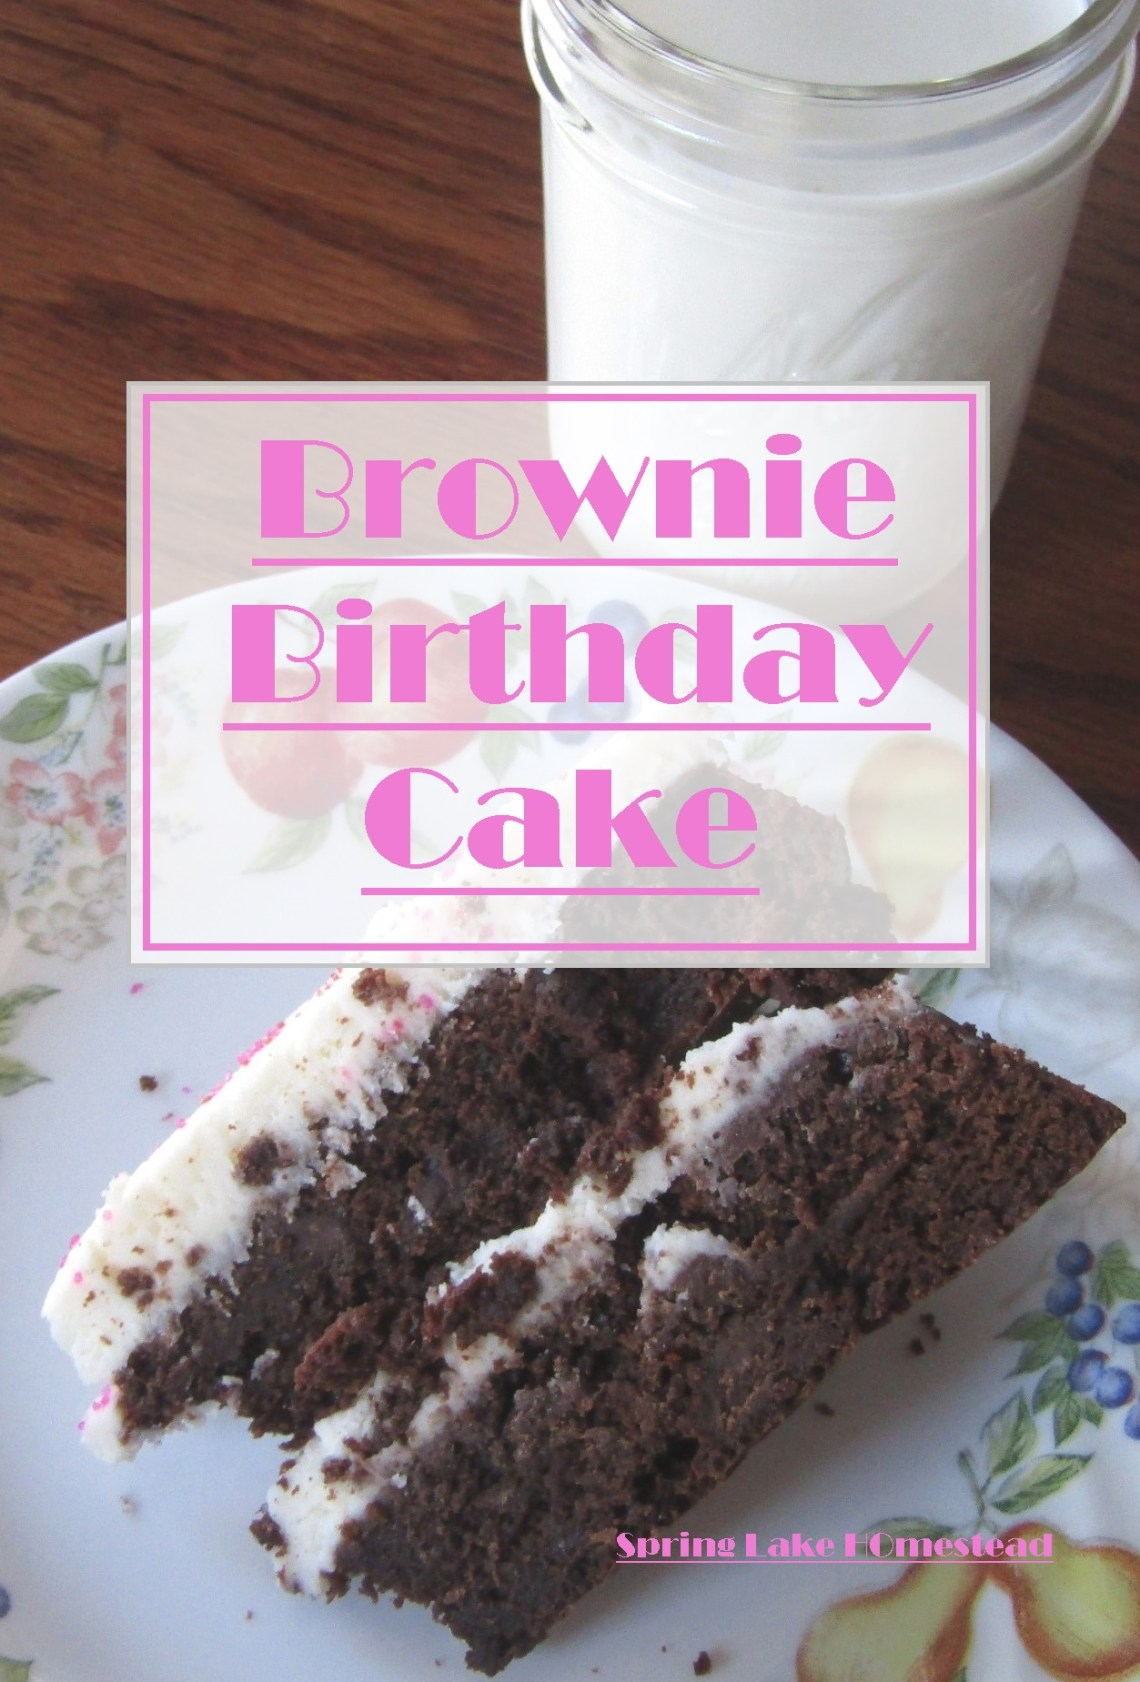 Brownie Birthday Cake